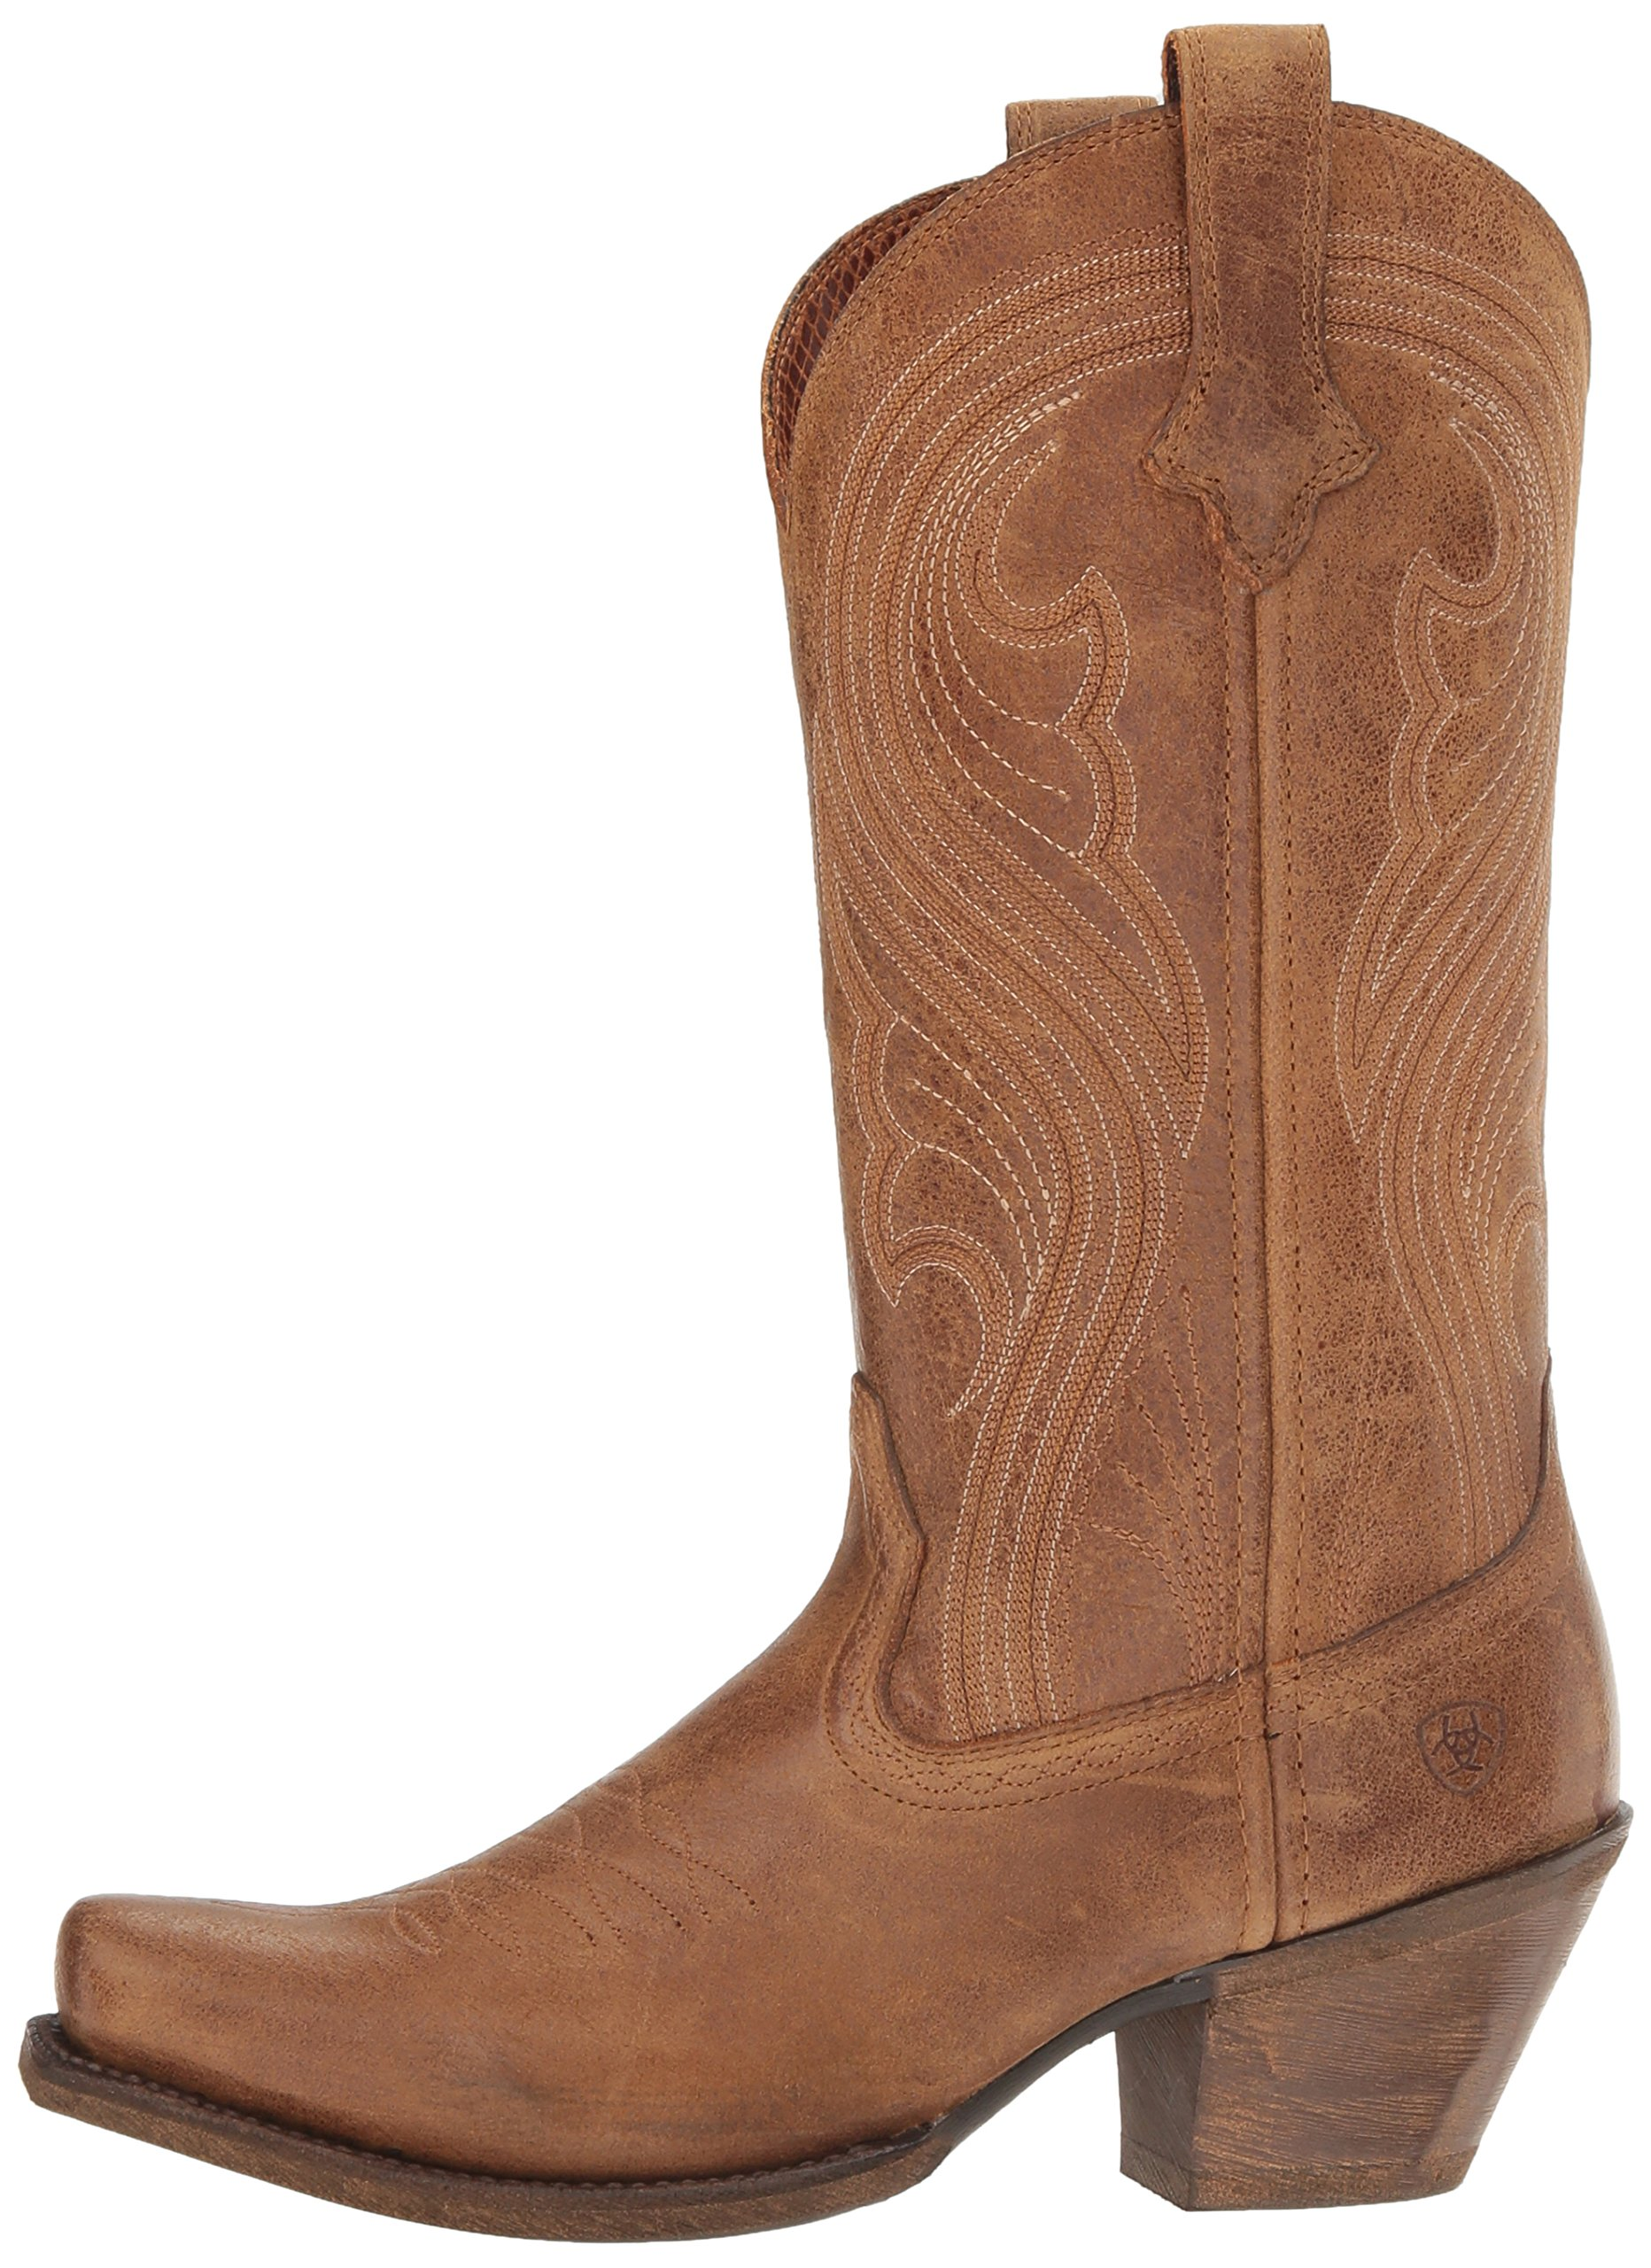 Ariat Women's Lively Western Cowboy Boot, Old West Brown, 9 B US by Ariat (Image #5)